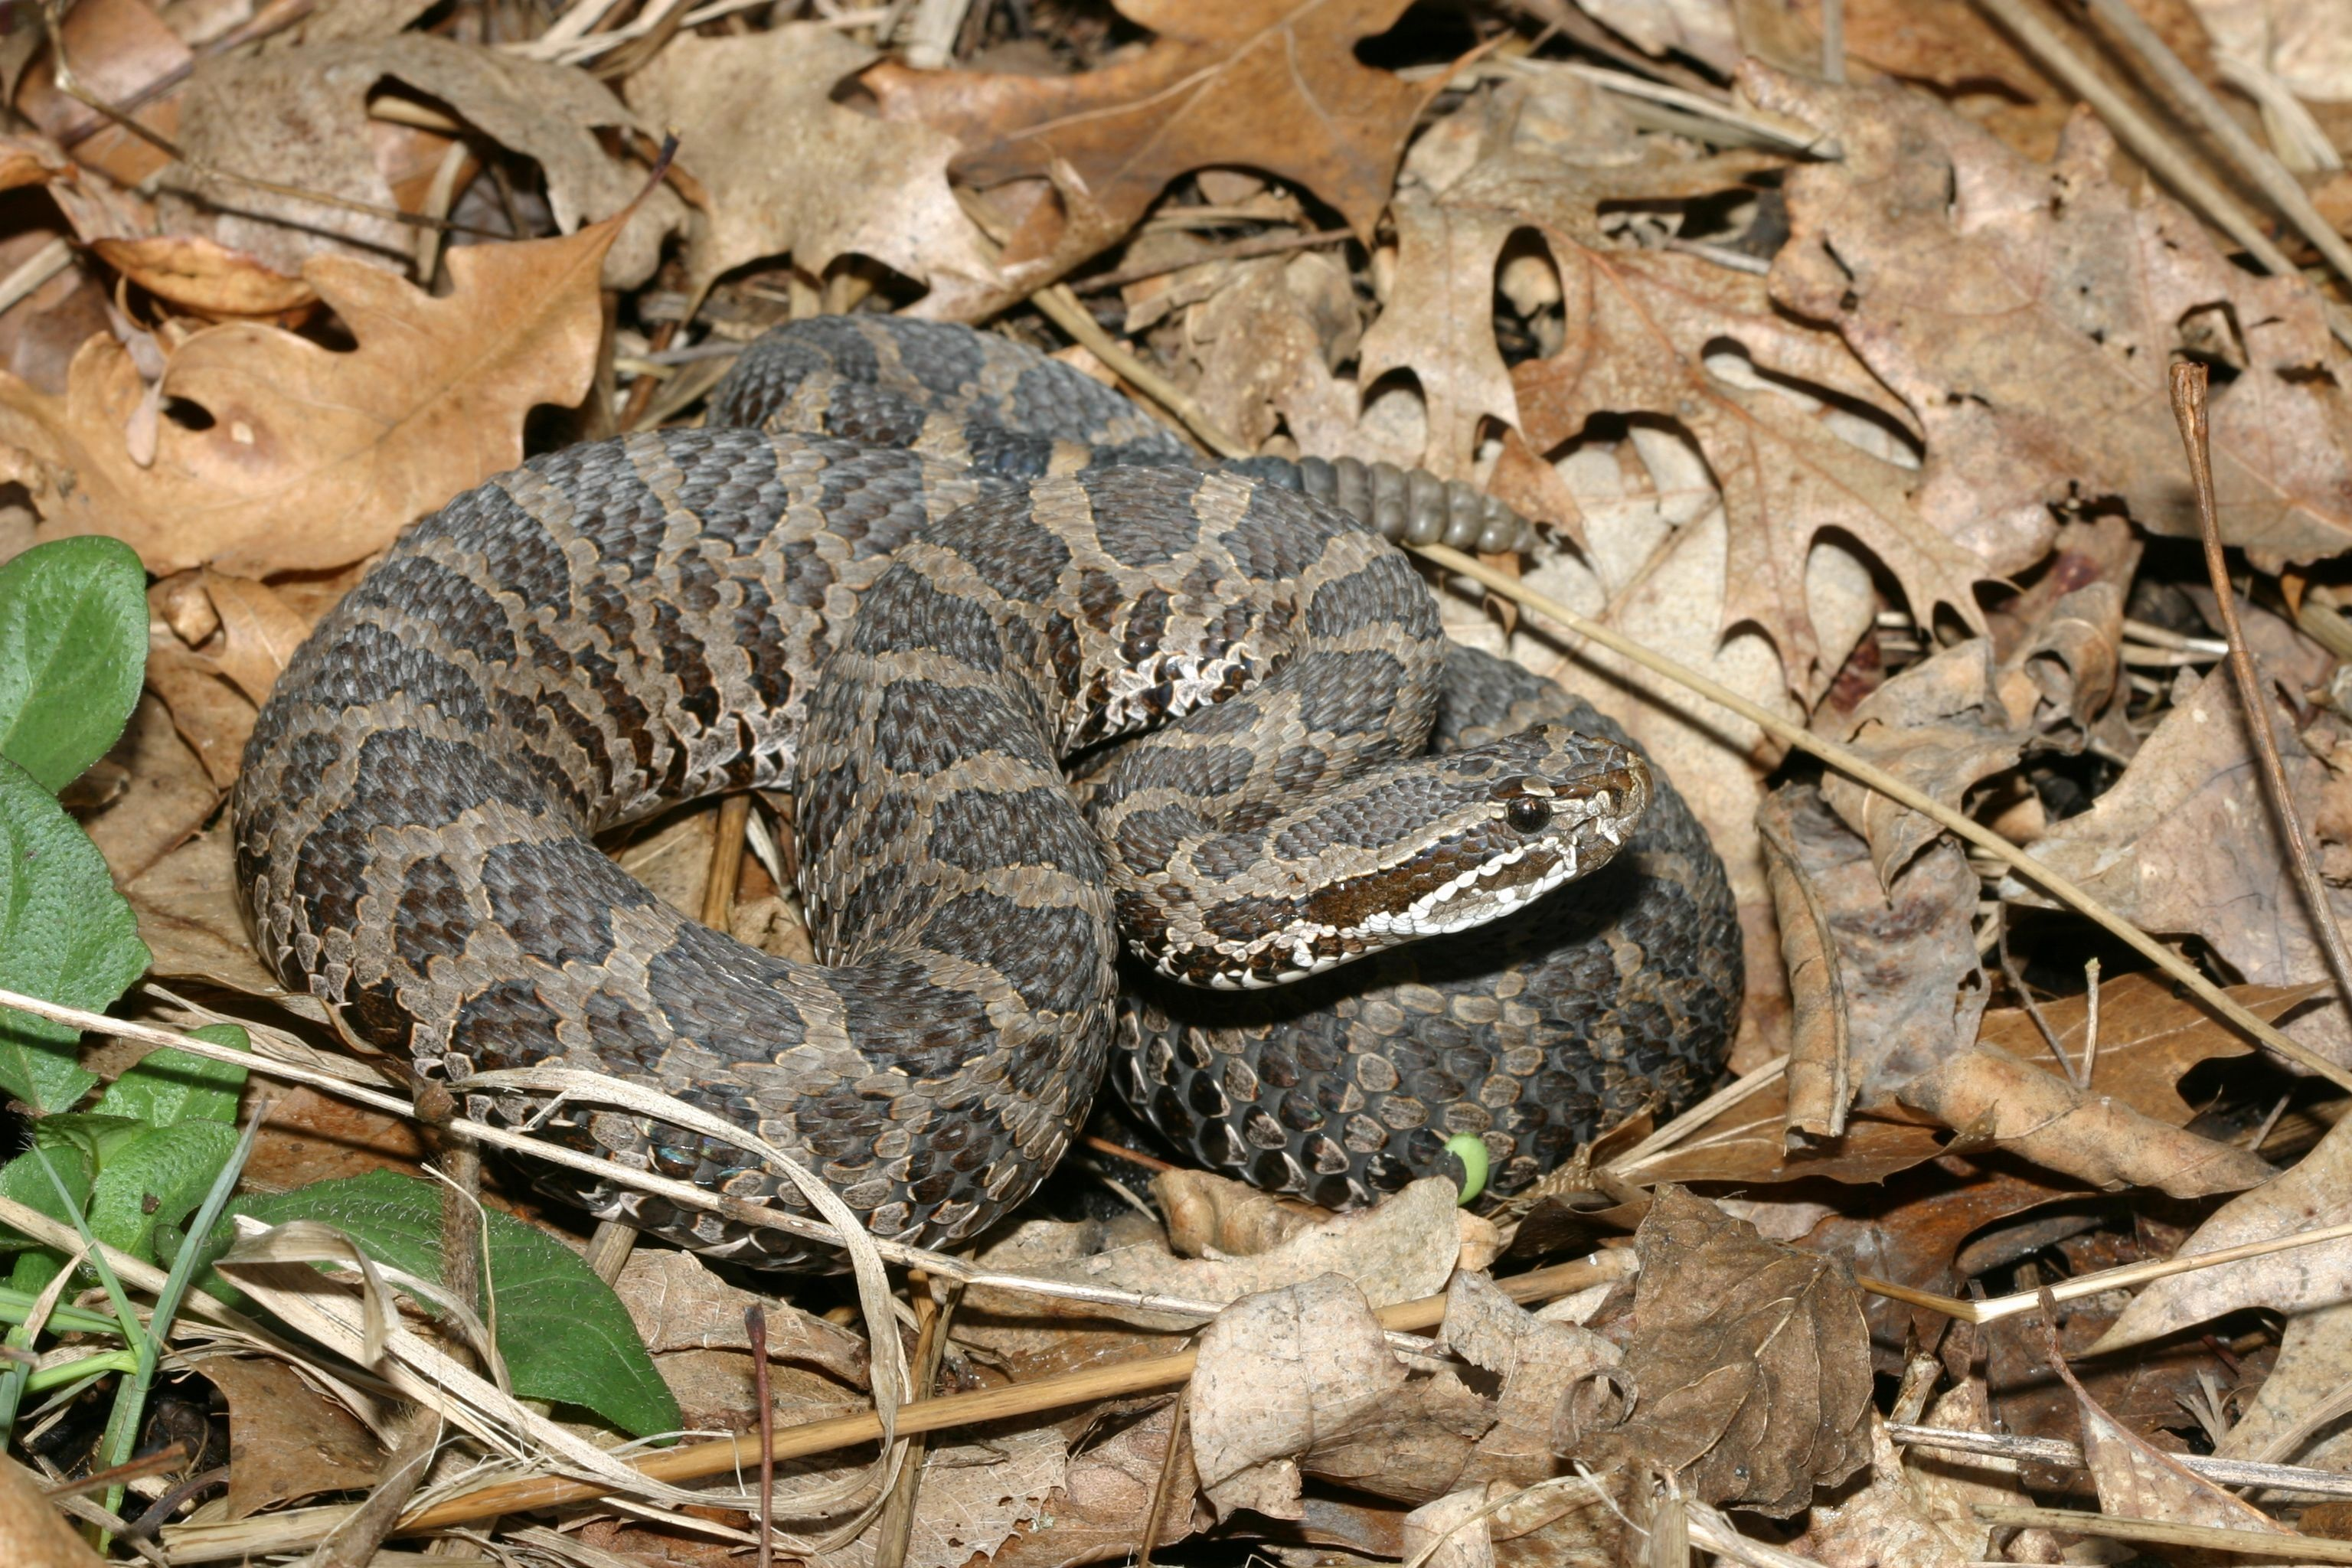 Snakes Venomous Snakes To Look Out For In New Mexico Myers RV - Poisonous snakes in mississippi